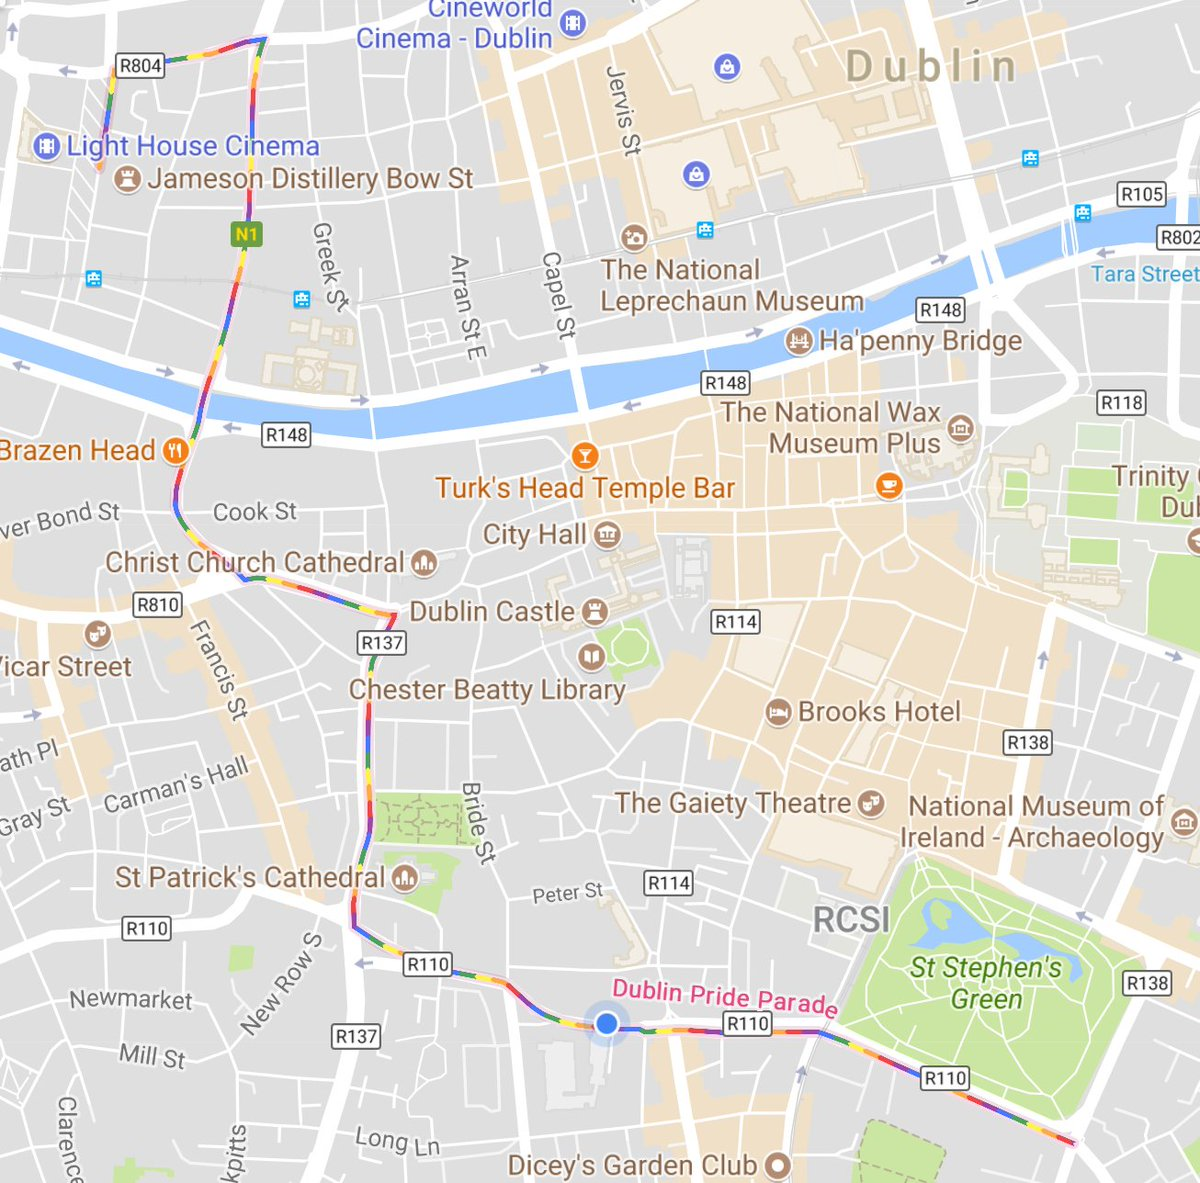 Very cool that #GoogleMaps is doing this. And that I&#39;m in a cafe along the route of course :) Happy pride all!  #DublinPride<br>http://pic.twitter.com/JfAbREkpM3